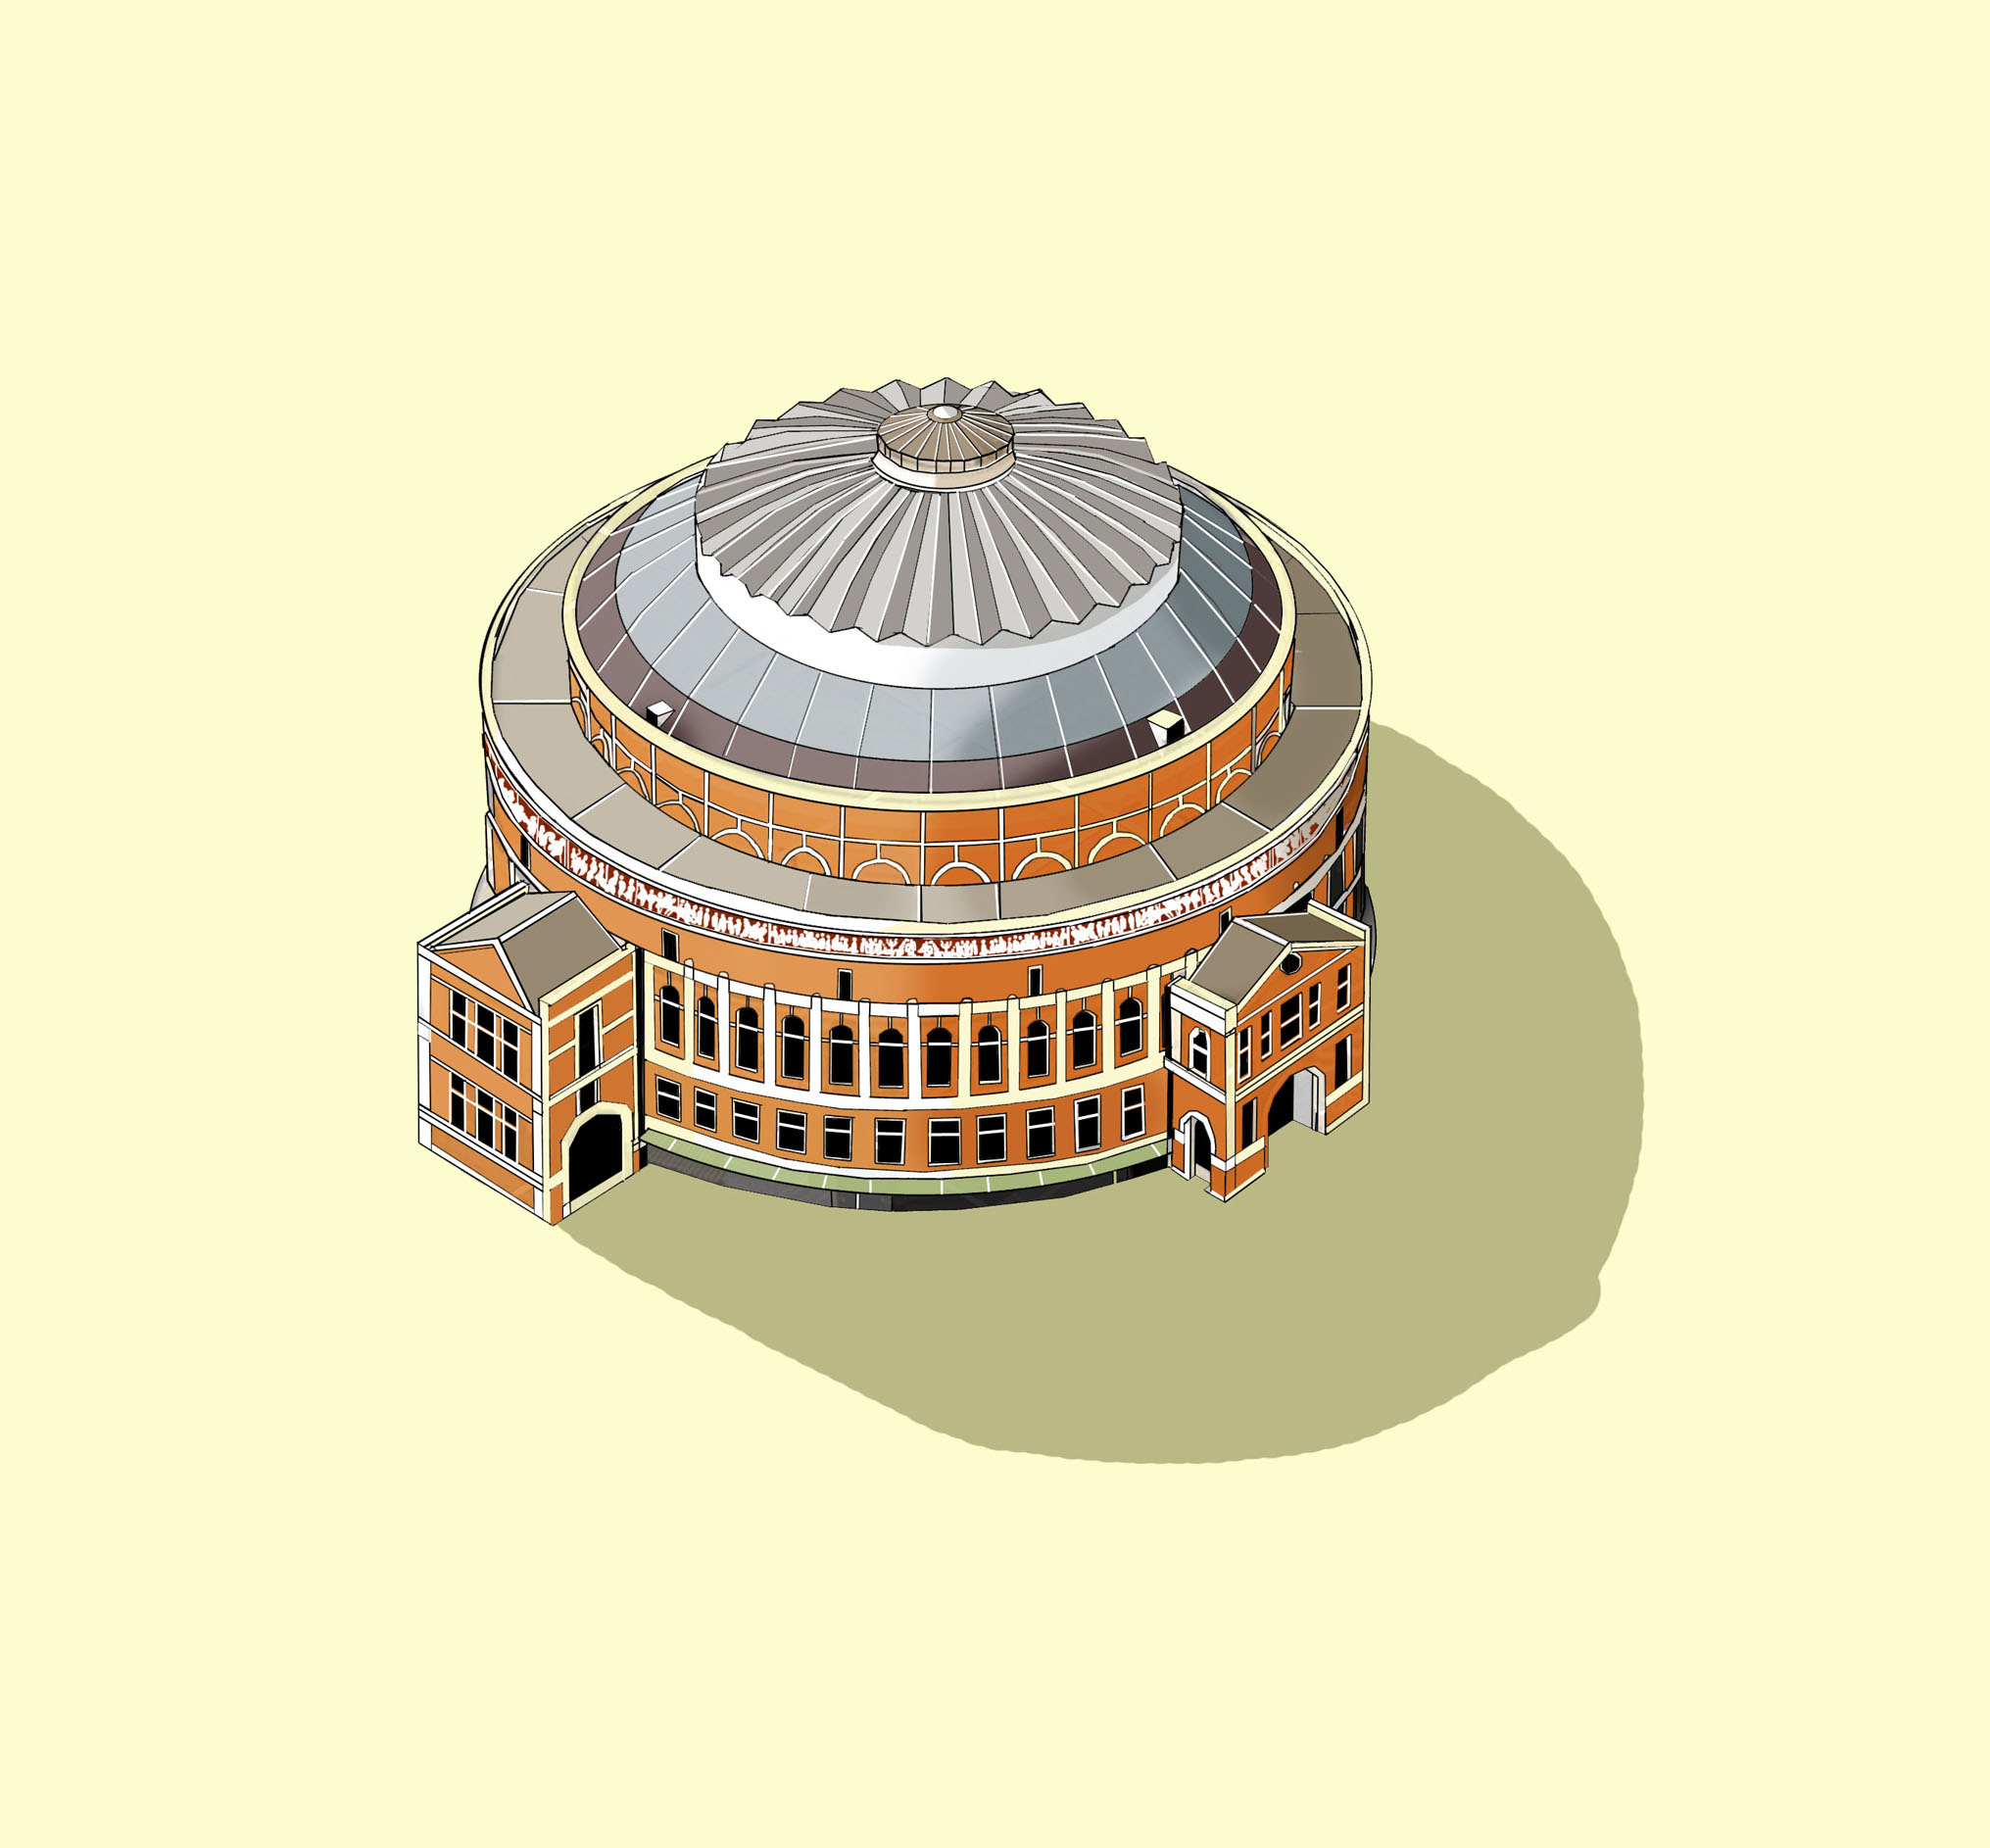 The Royal Albert Hall  Illustration by Katherine Baxter